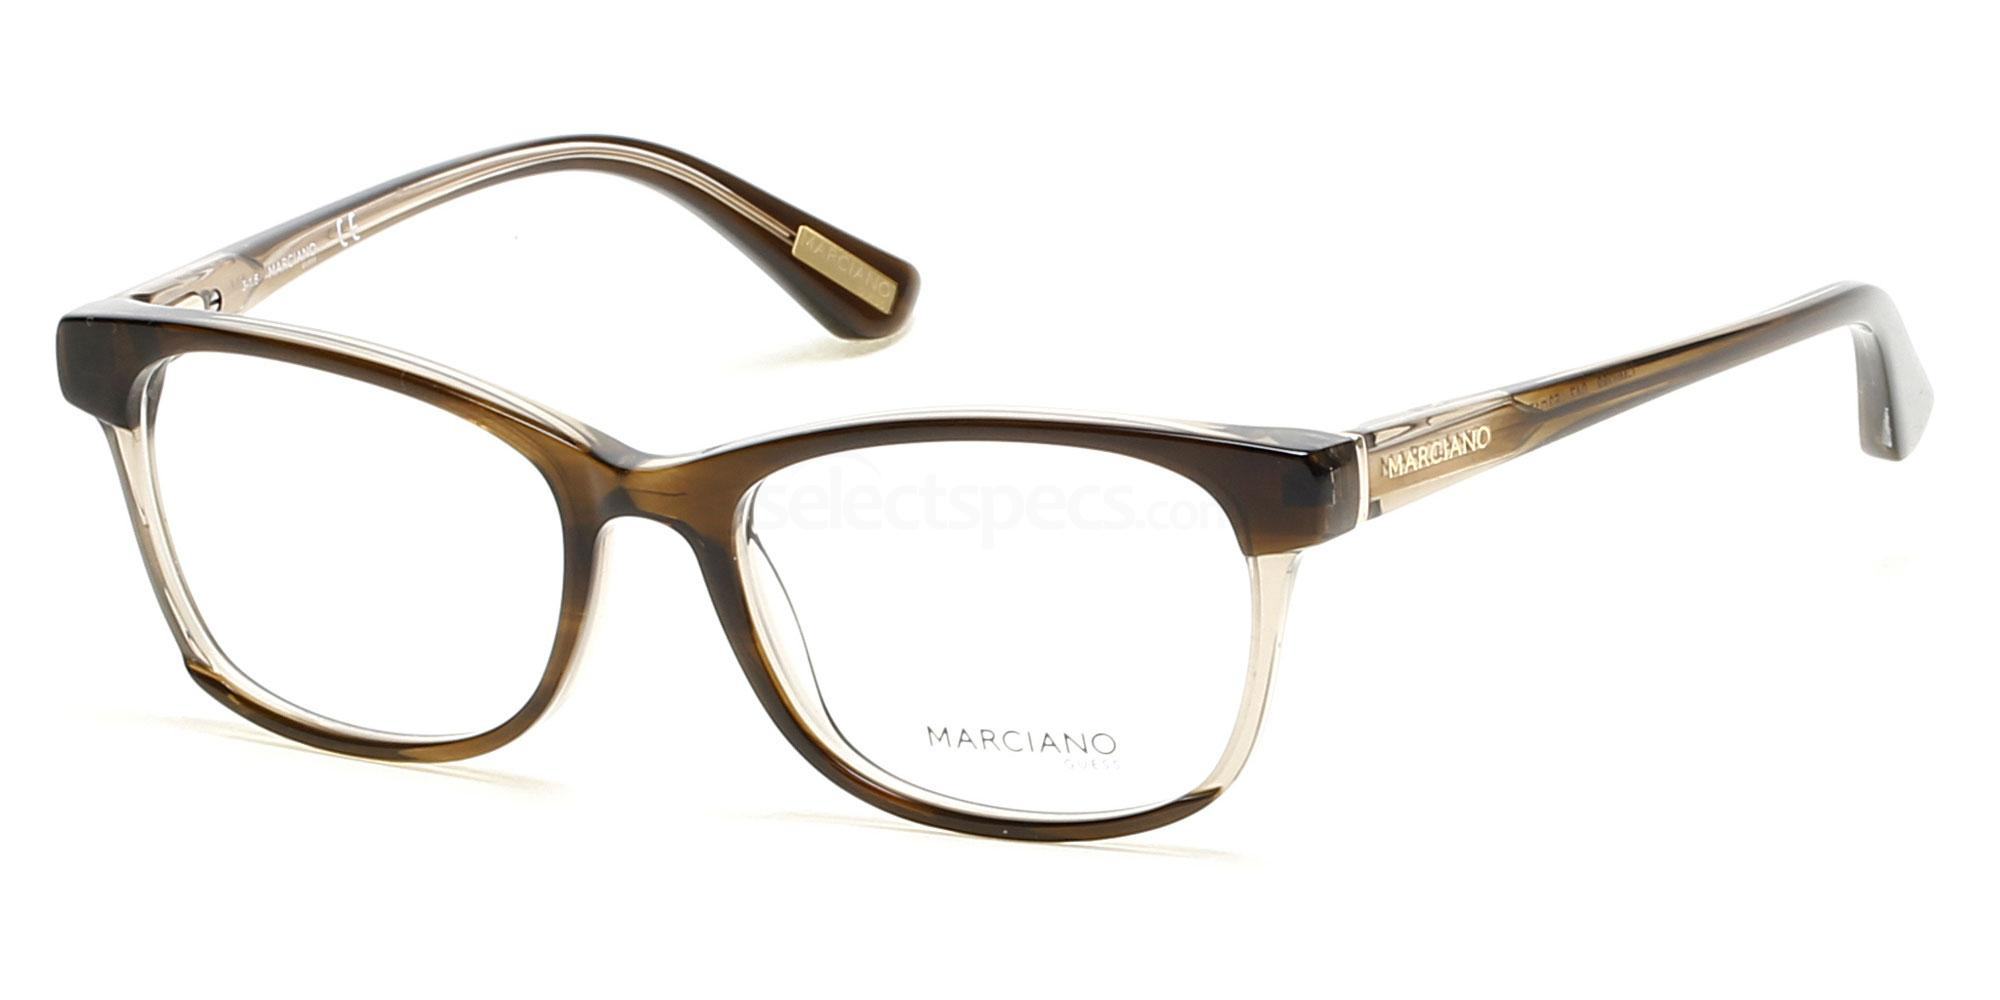 047 GM0288 Glasses, Guess by Marciano